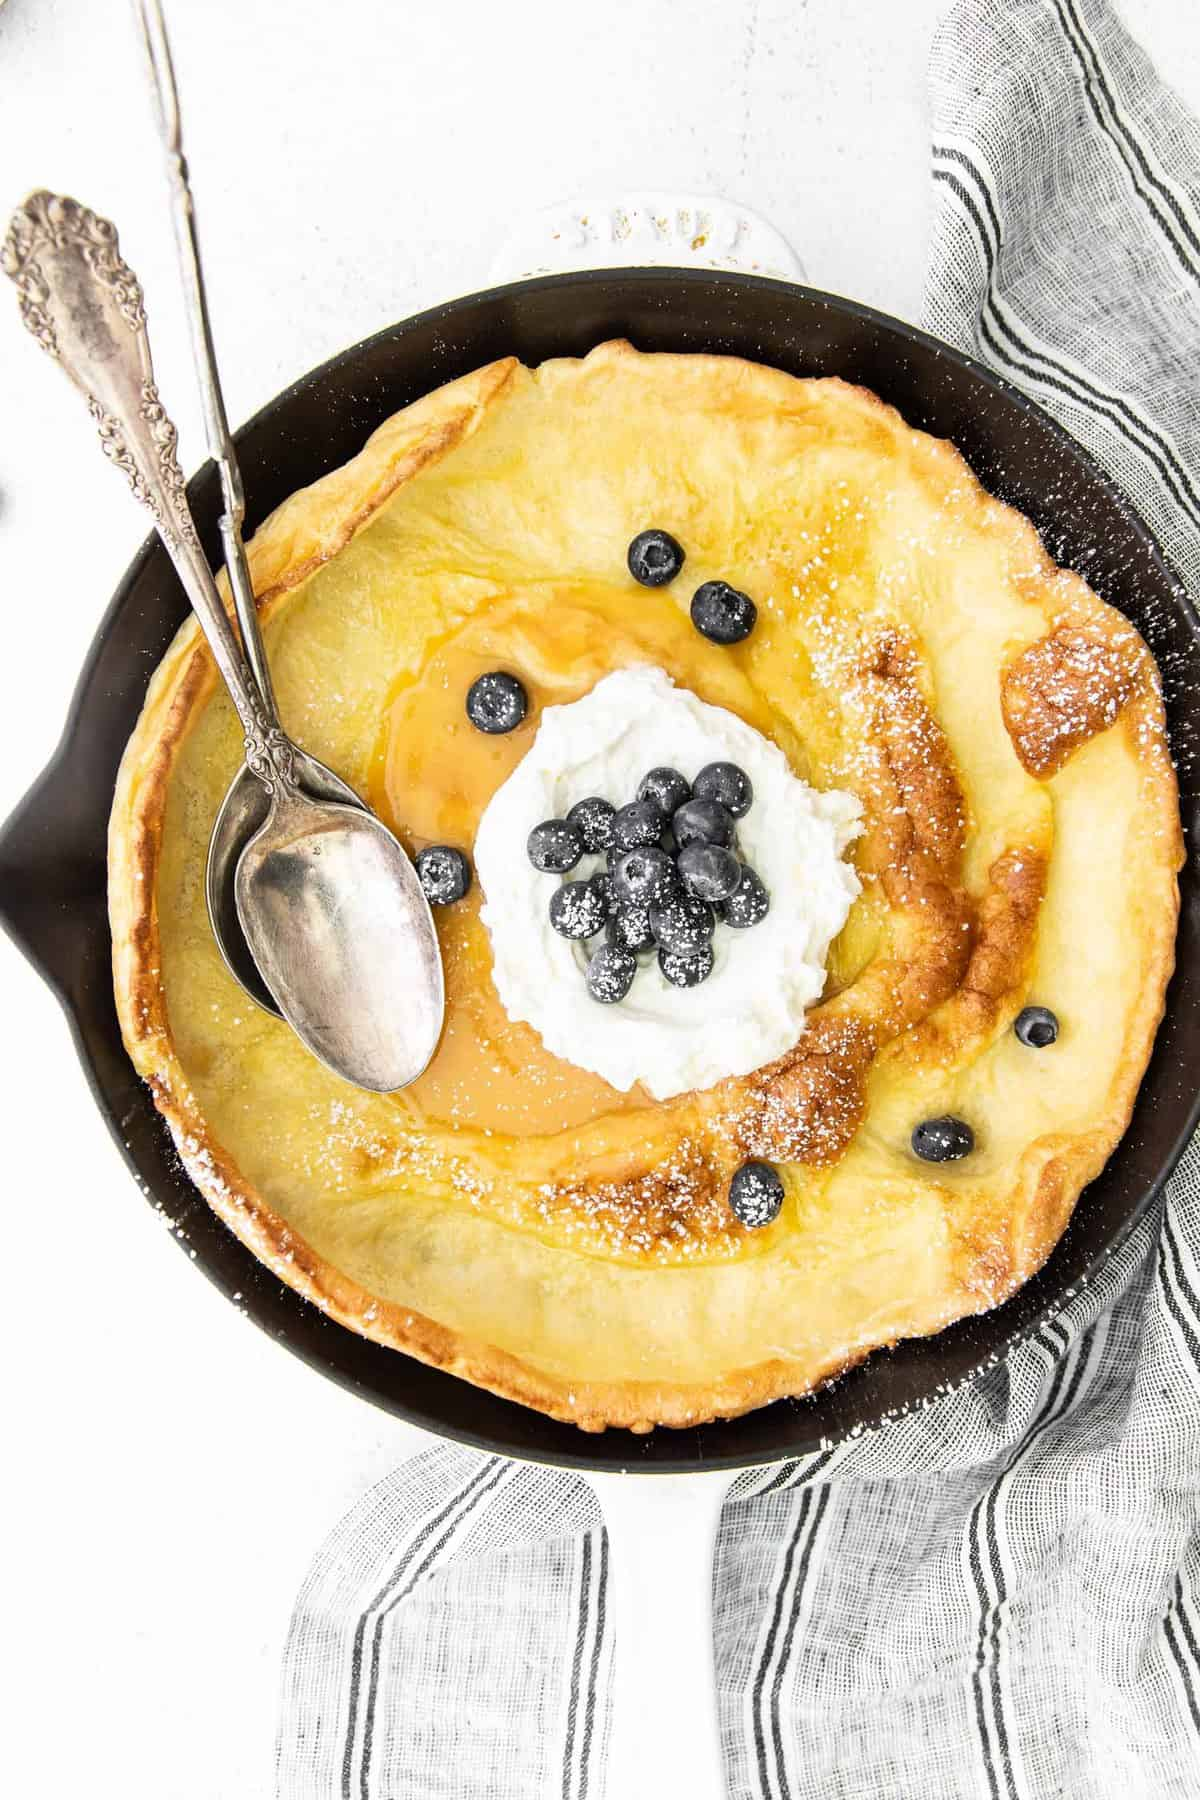 Overhead view of a lemon dutch baby pancake with blueberries and whipped cream.